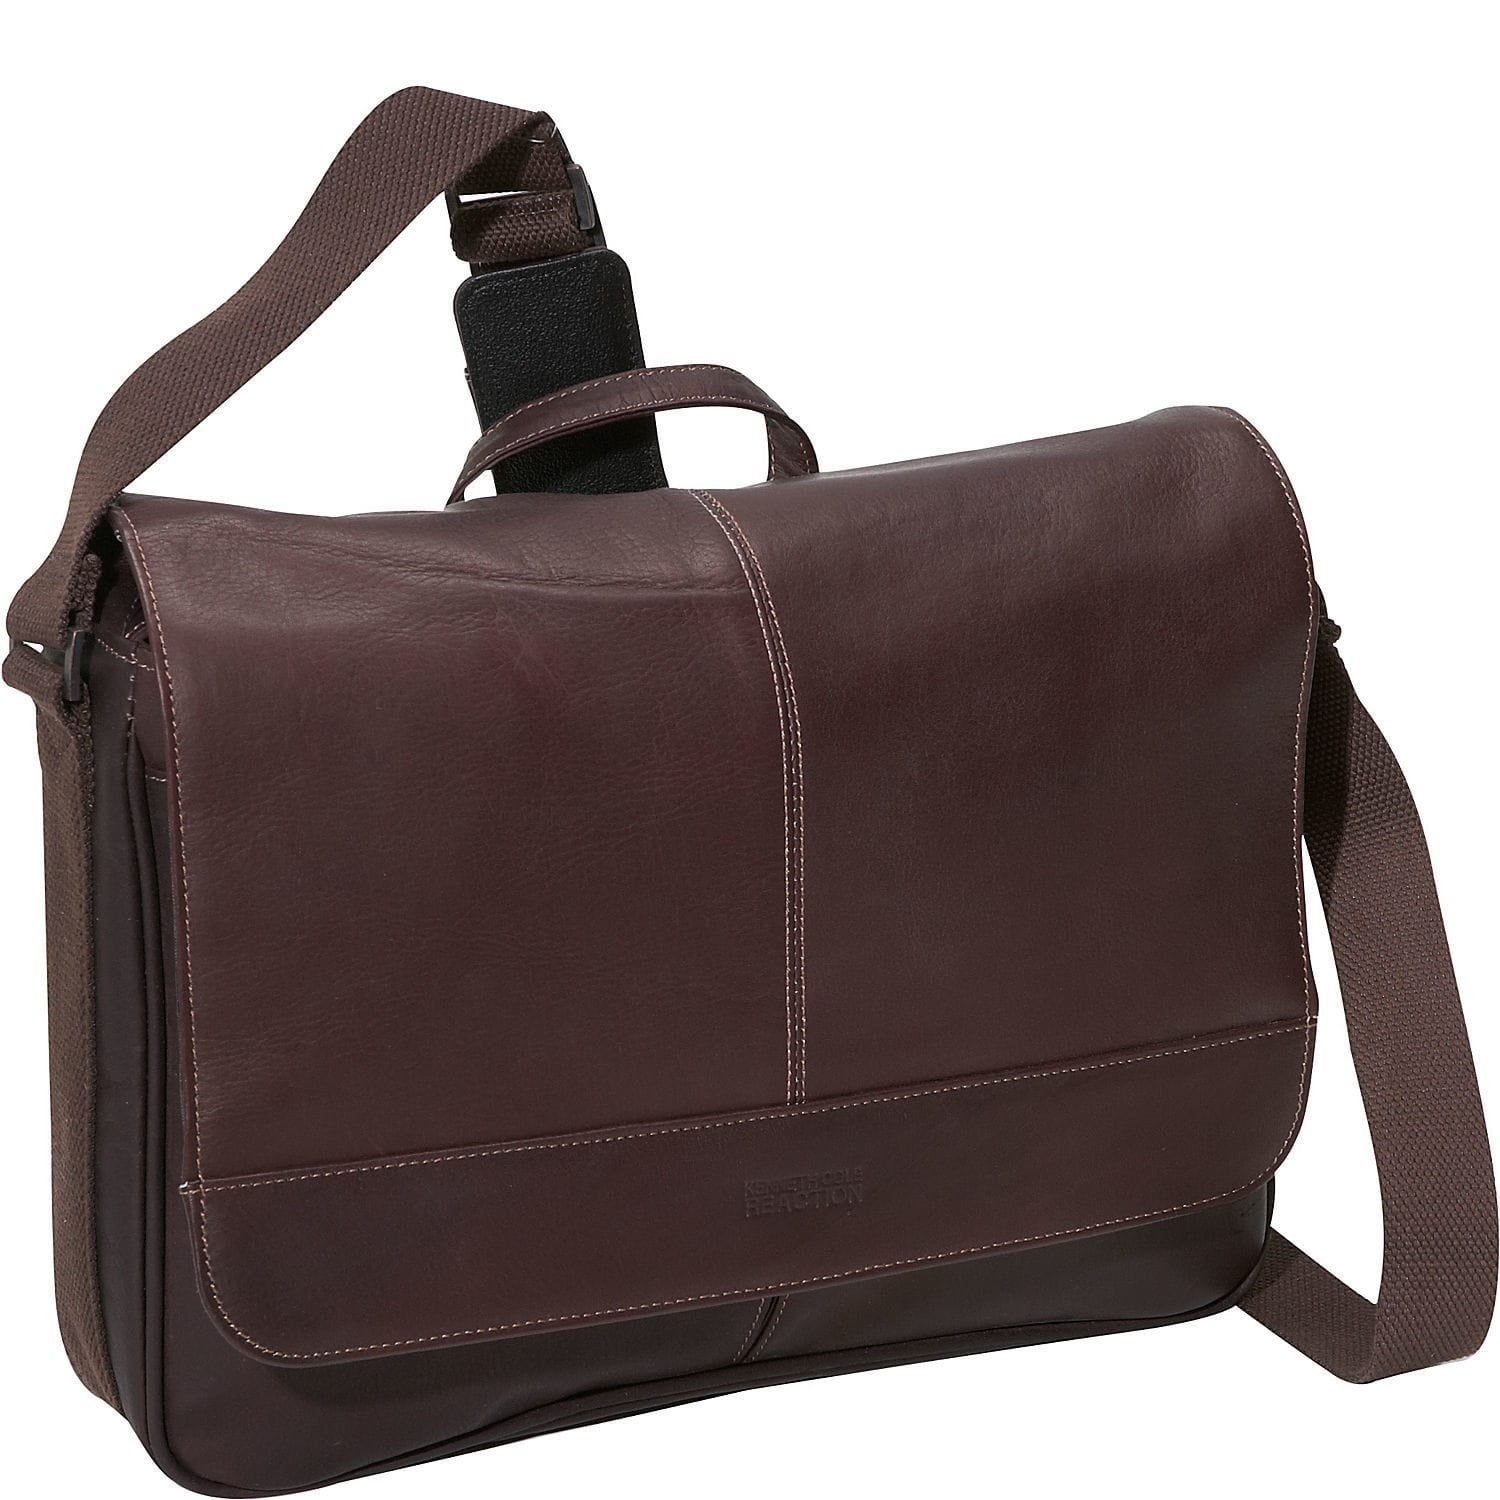 372b9ccc3 Kenneth Cole Reaction 'Risky Business' Colombian Leather Slim Flapover  Crossbody Messenger Bag